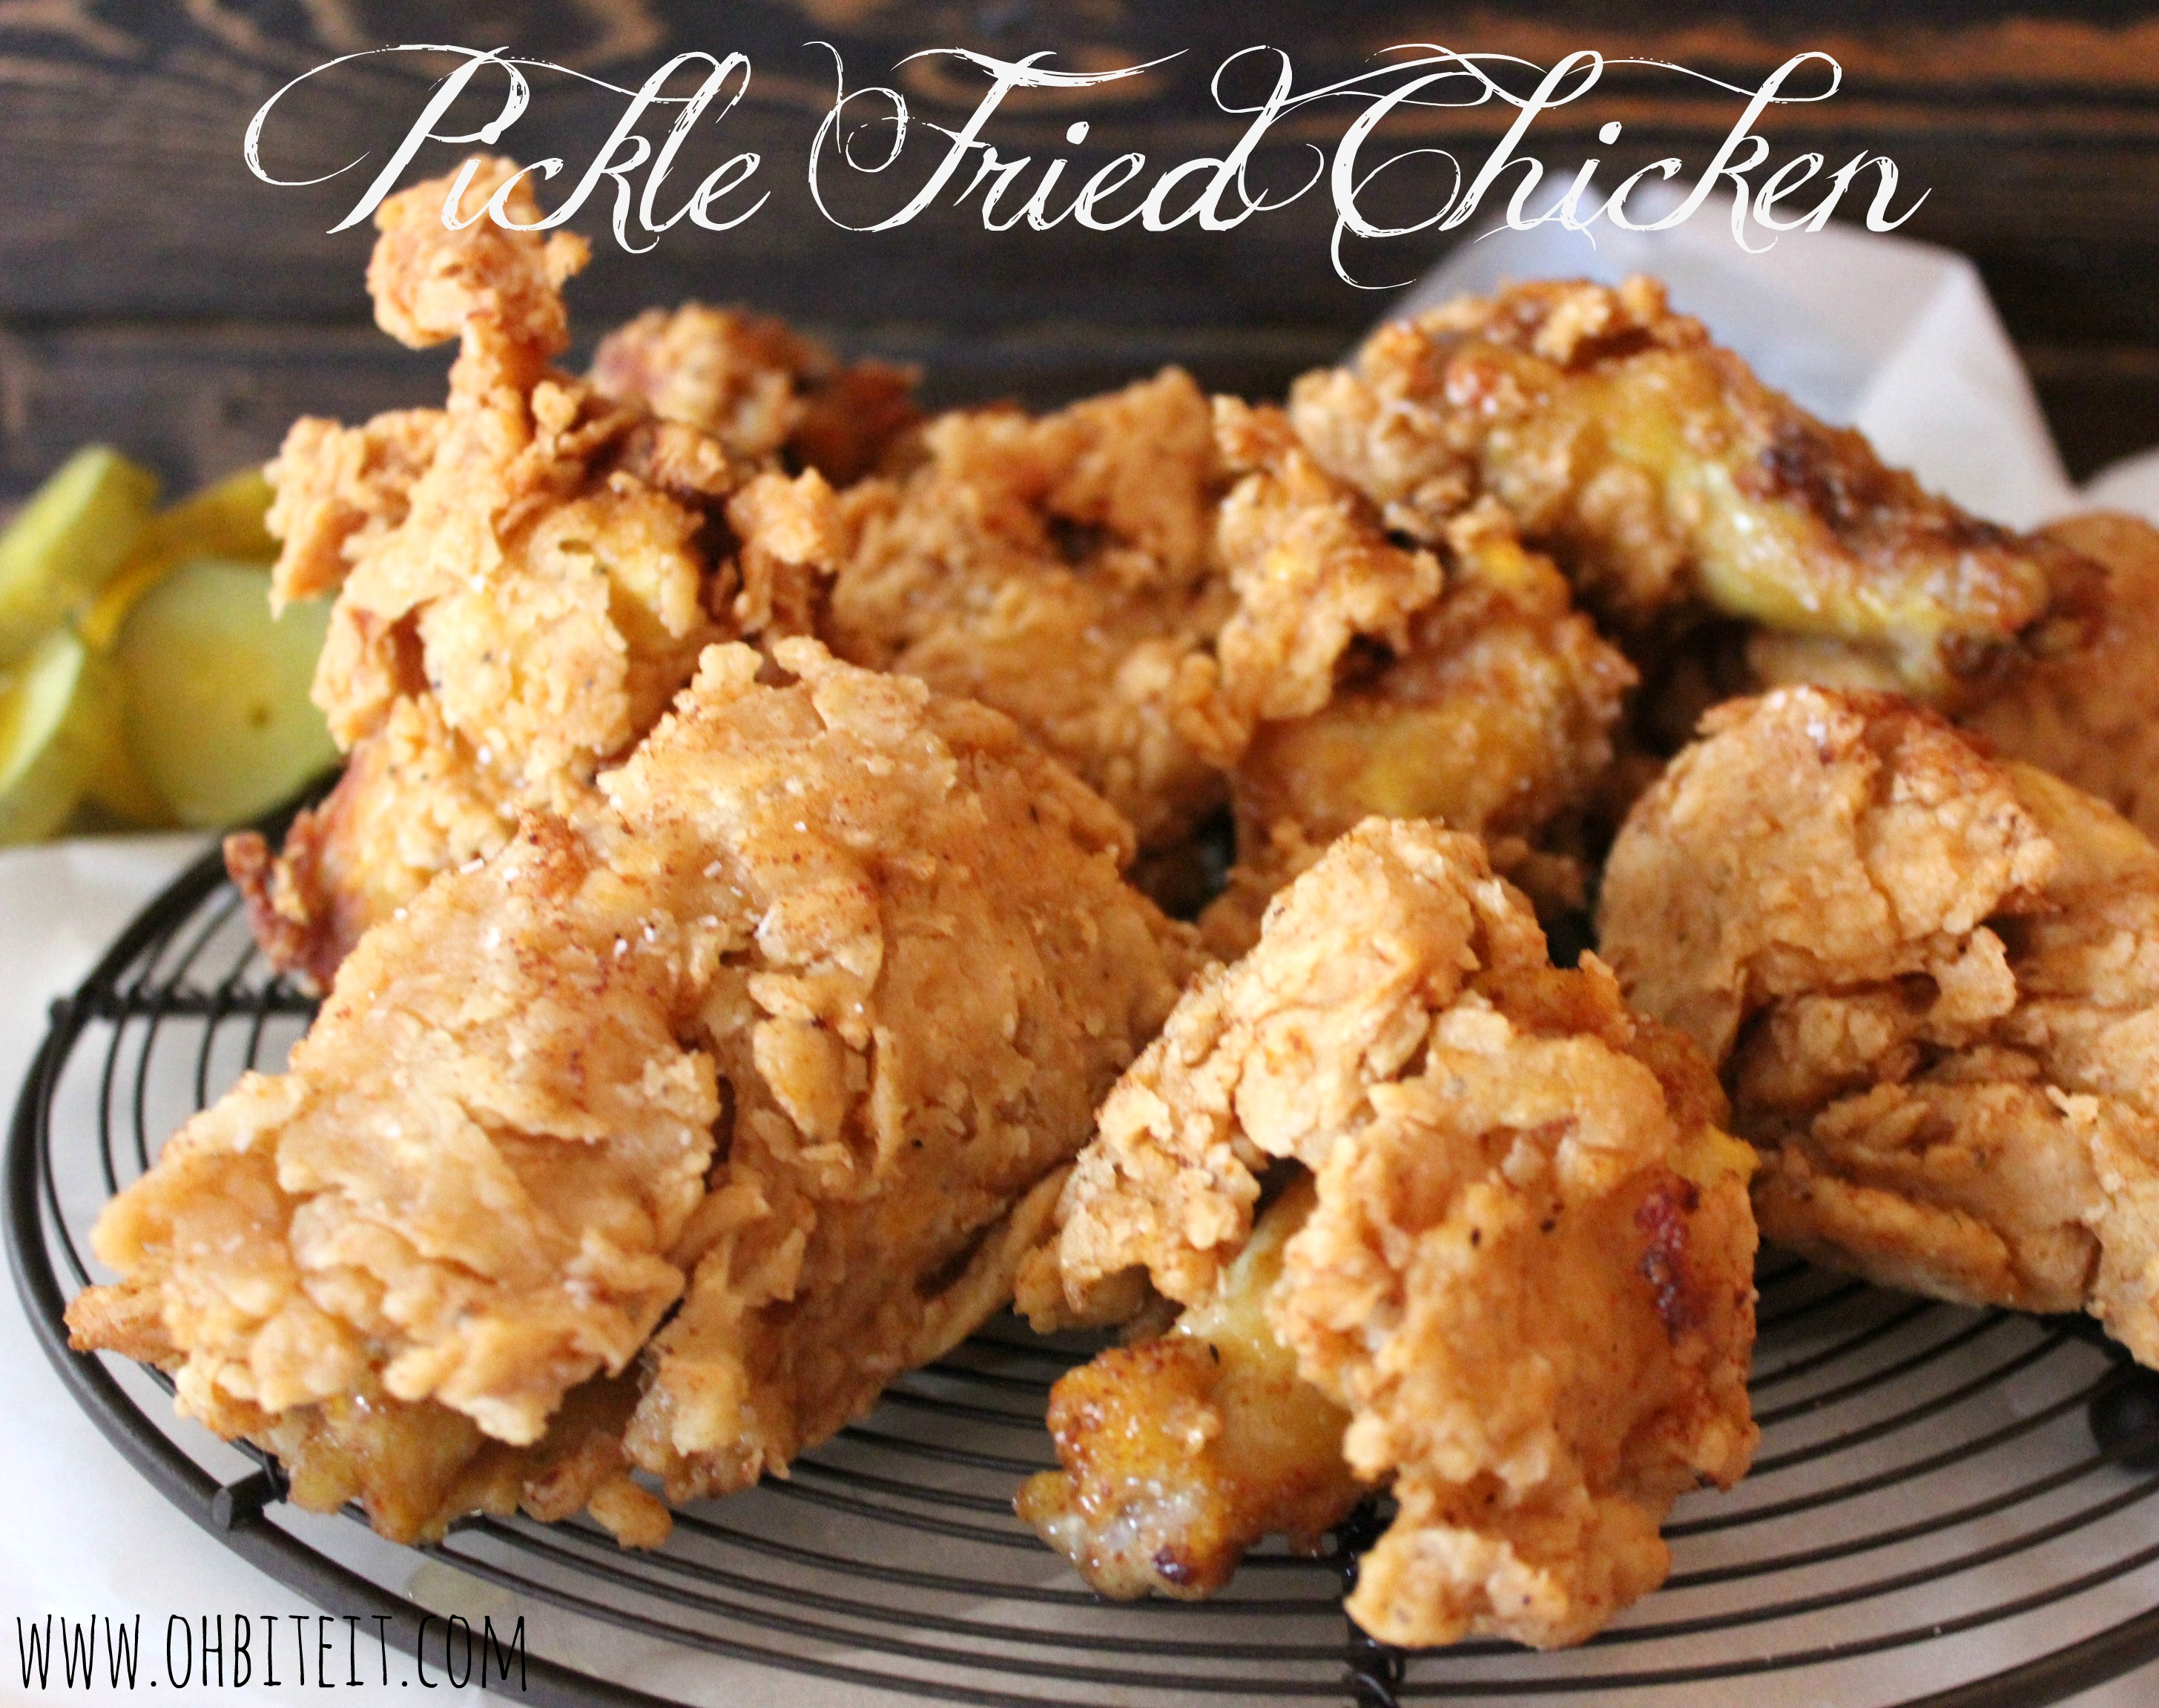 Quotes About Chicken Wings Quotesgram: Fried Chicken Funny Quotes. QuotesGram